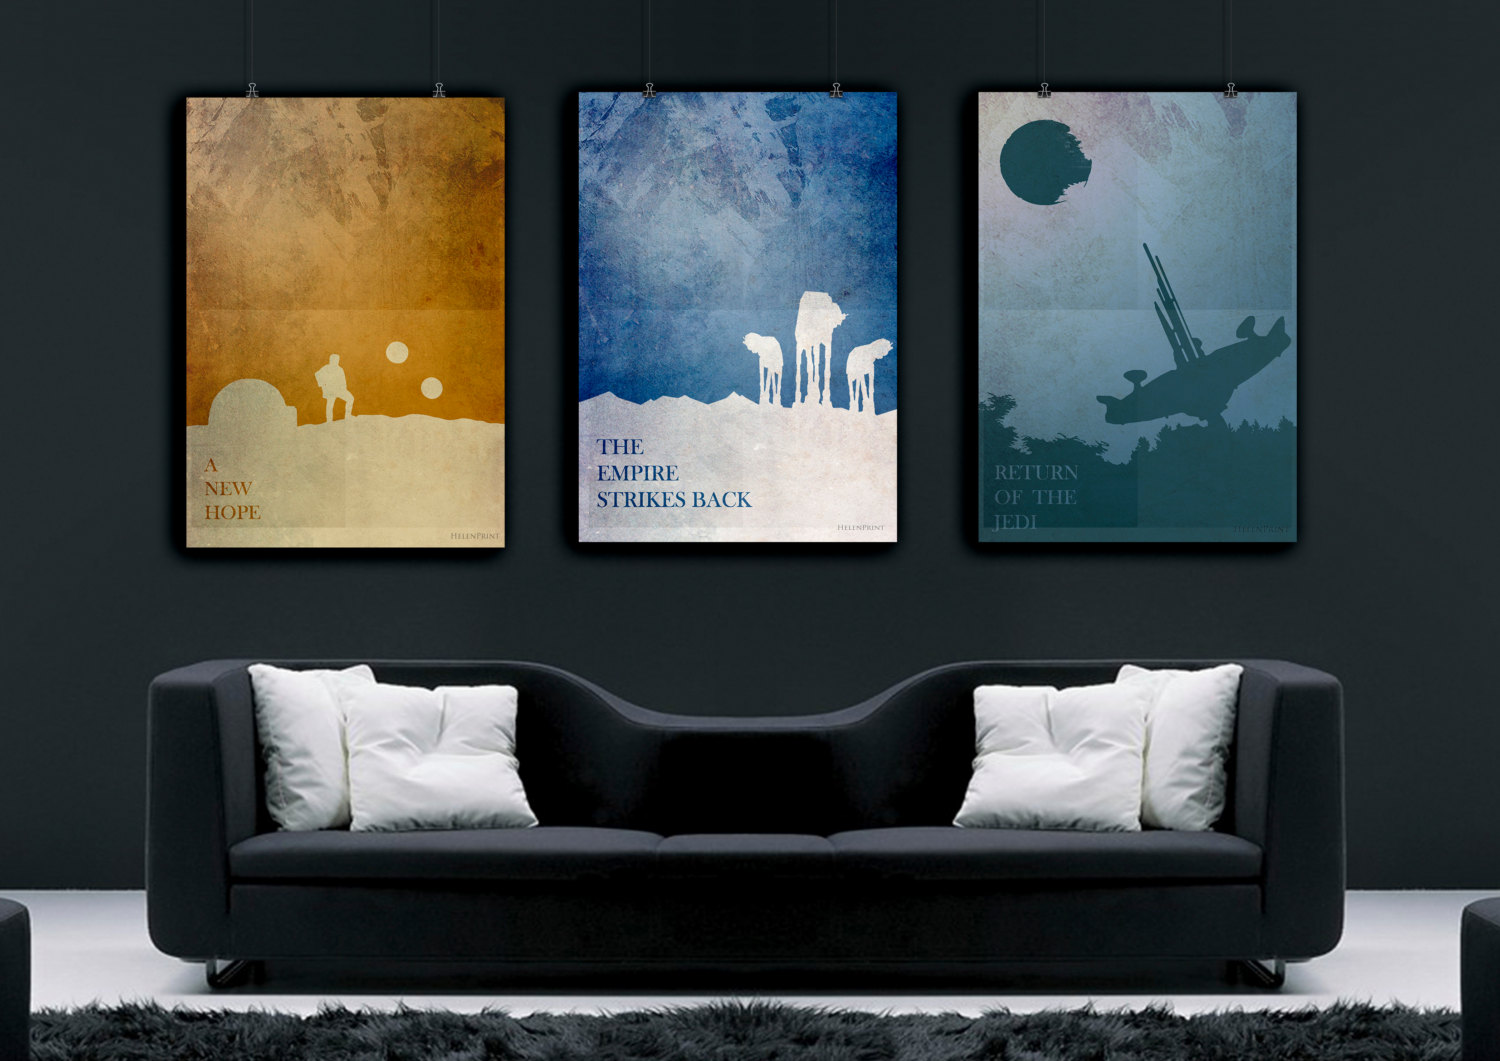 star wars home decor 10 Star Wars Home Decor Ideas So You're Not the Last to Join the Hype star wars home decor